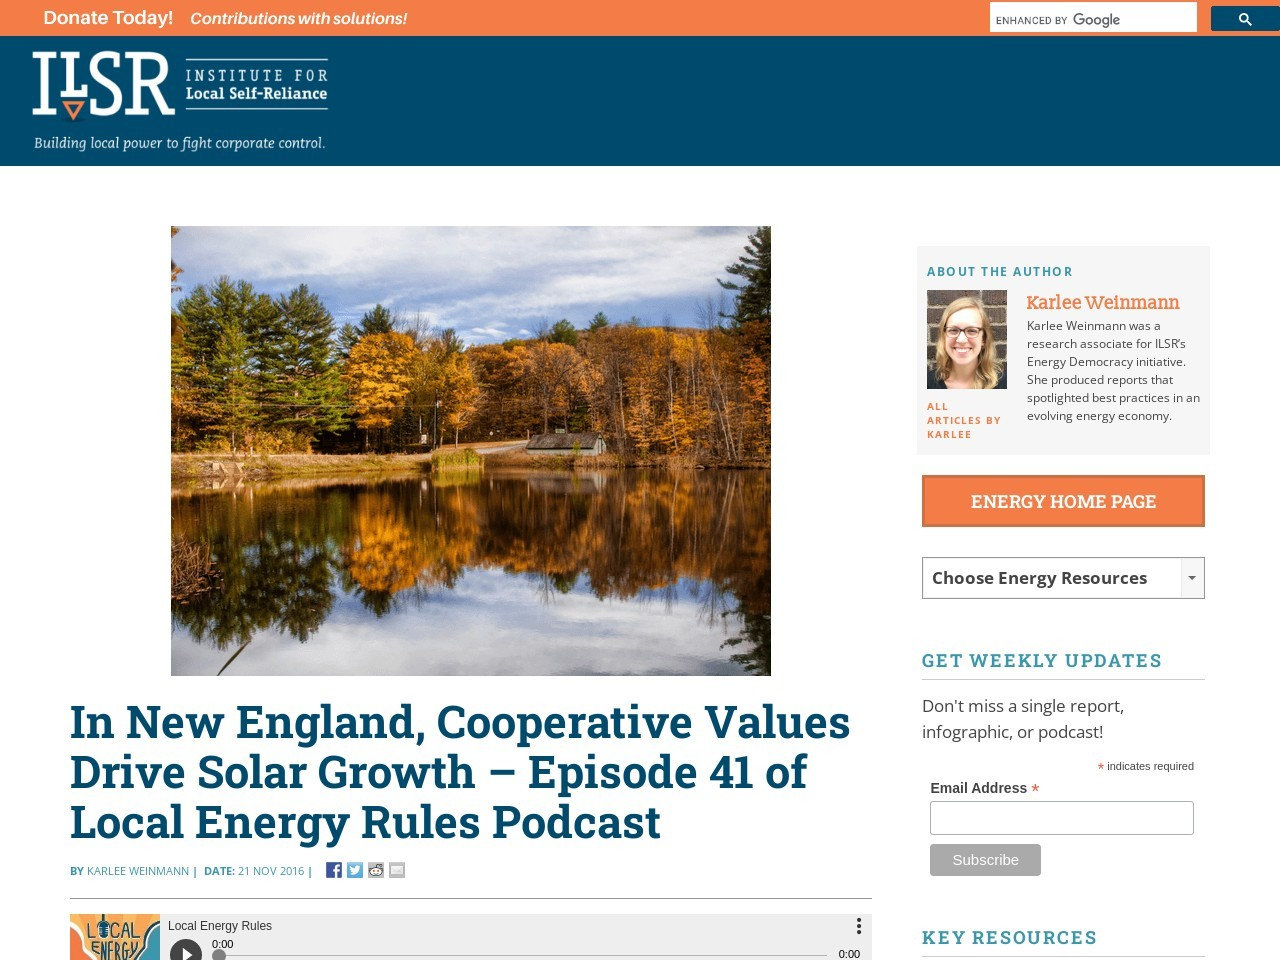 In New England, Cooperative Values Drive Solar Growth